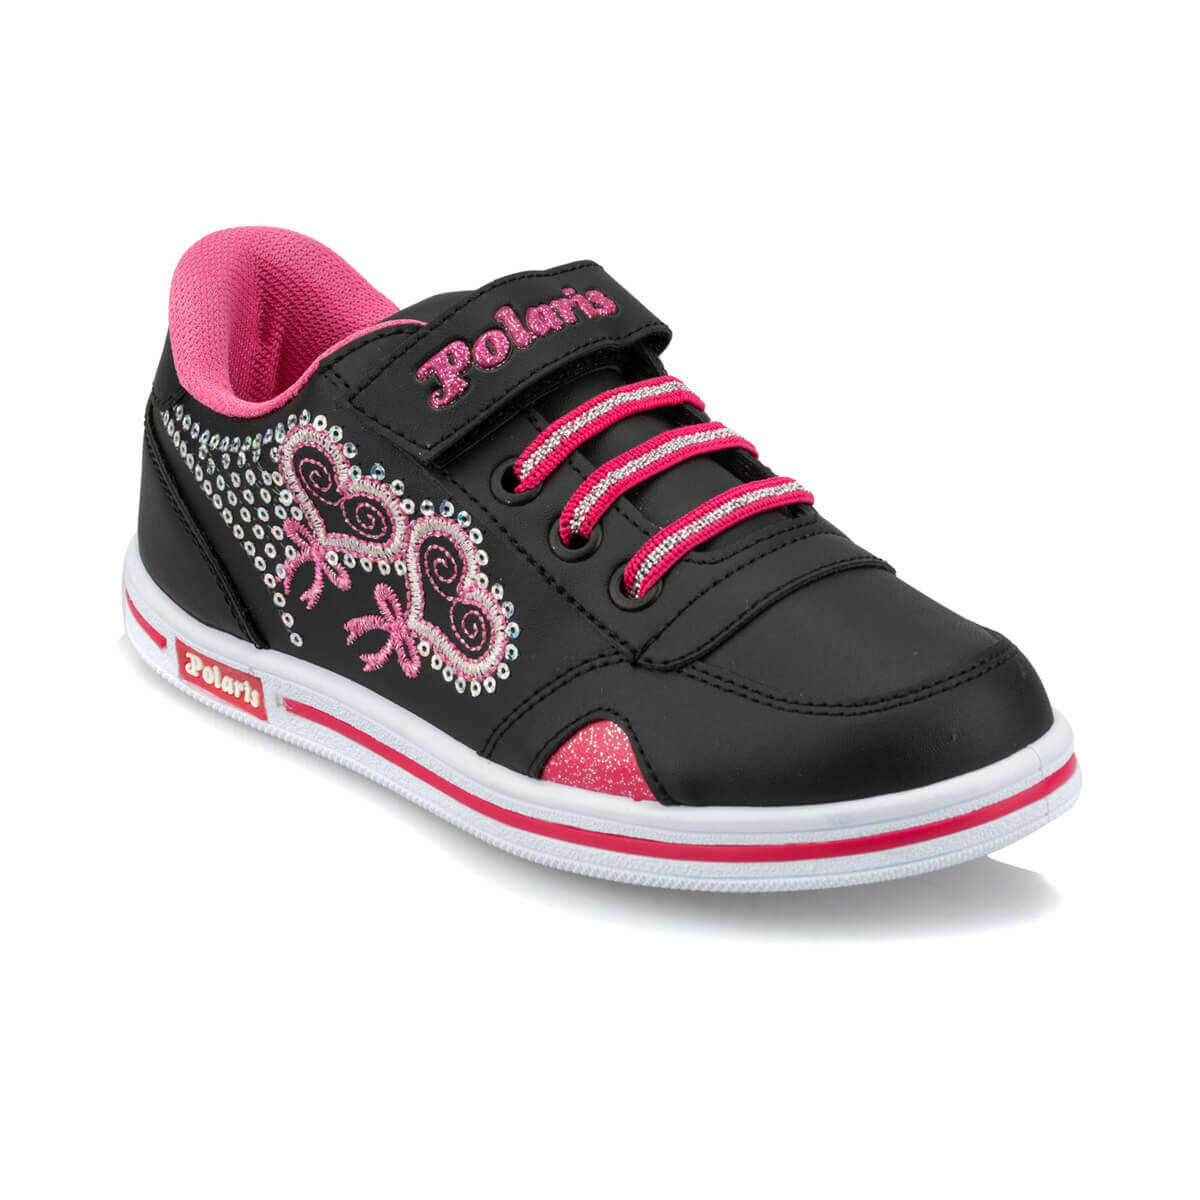 FLO 92.507666.F Black Female Child Sneaker Shoes Polaris